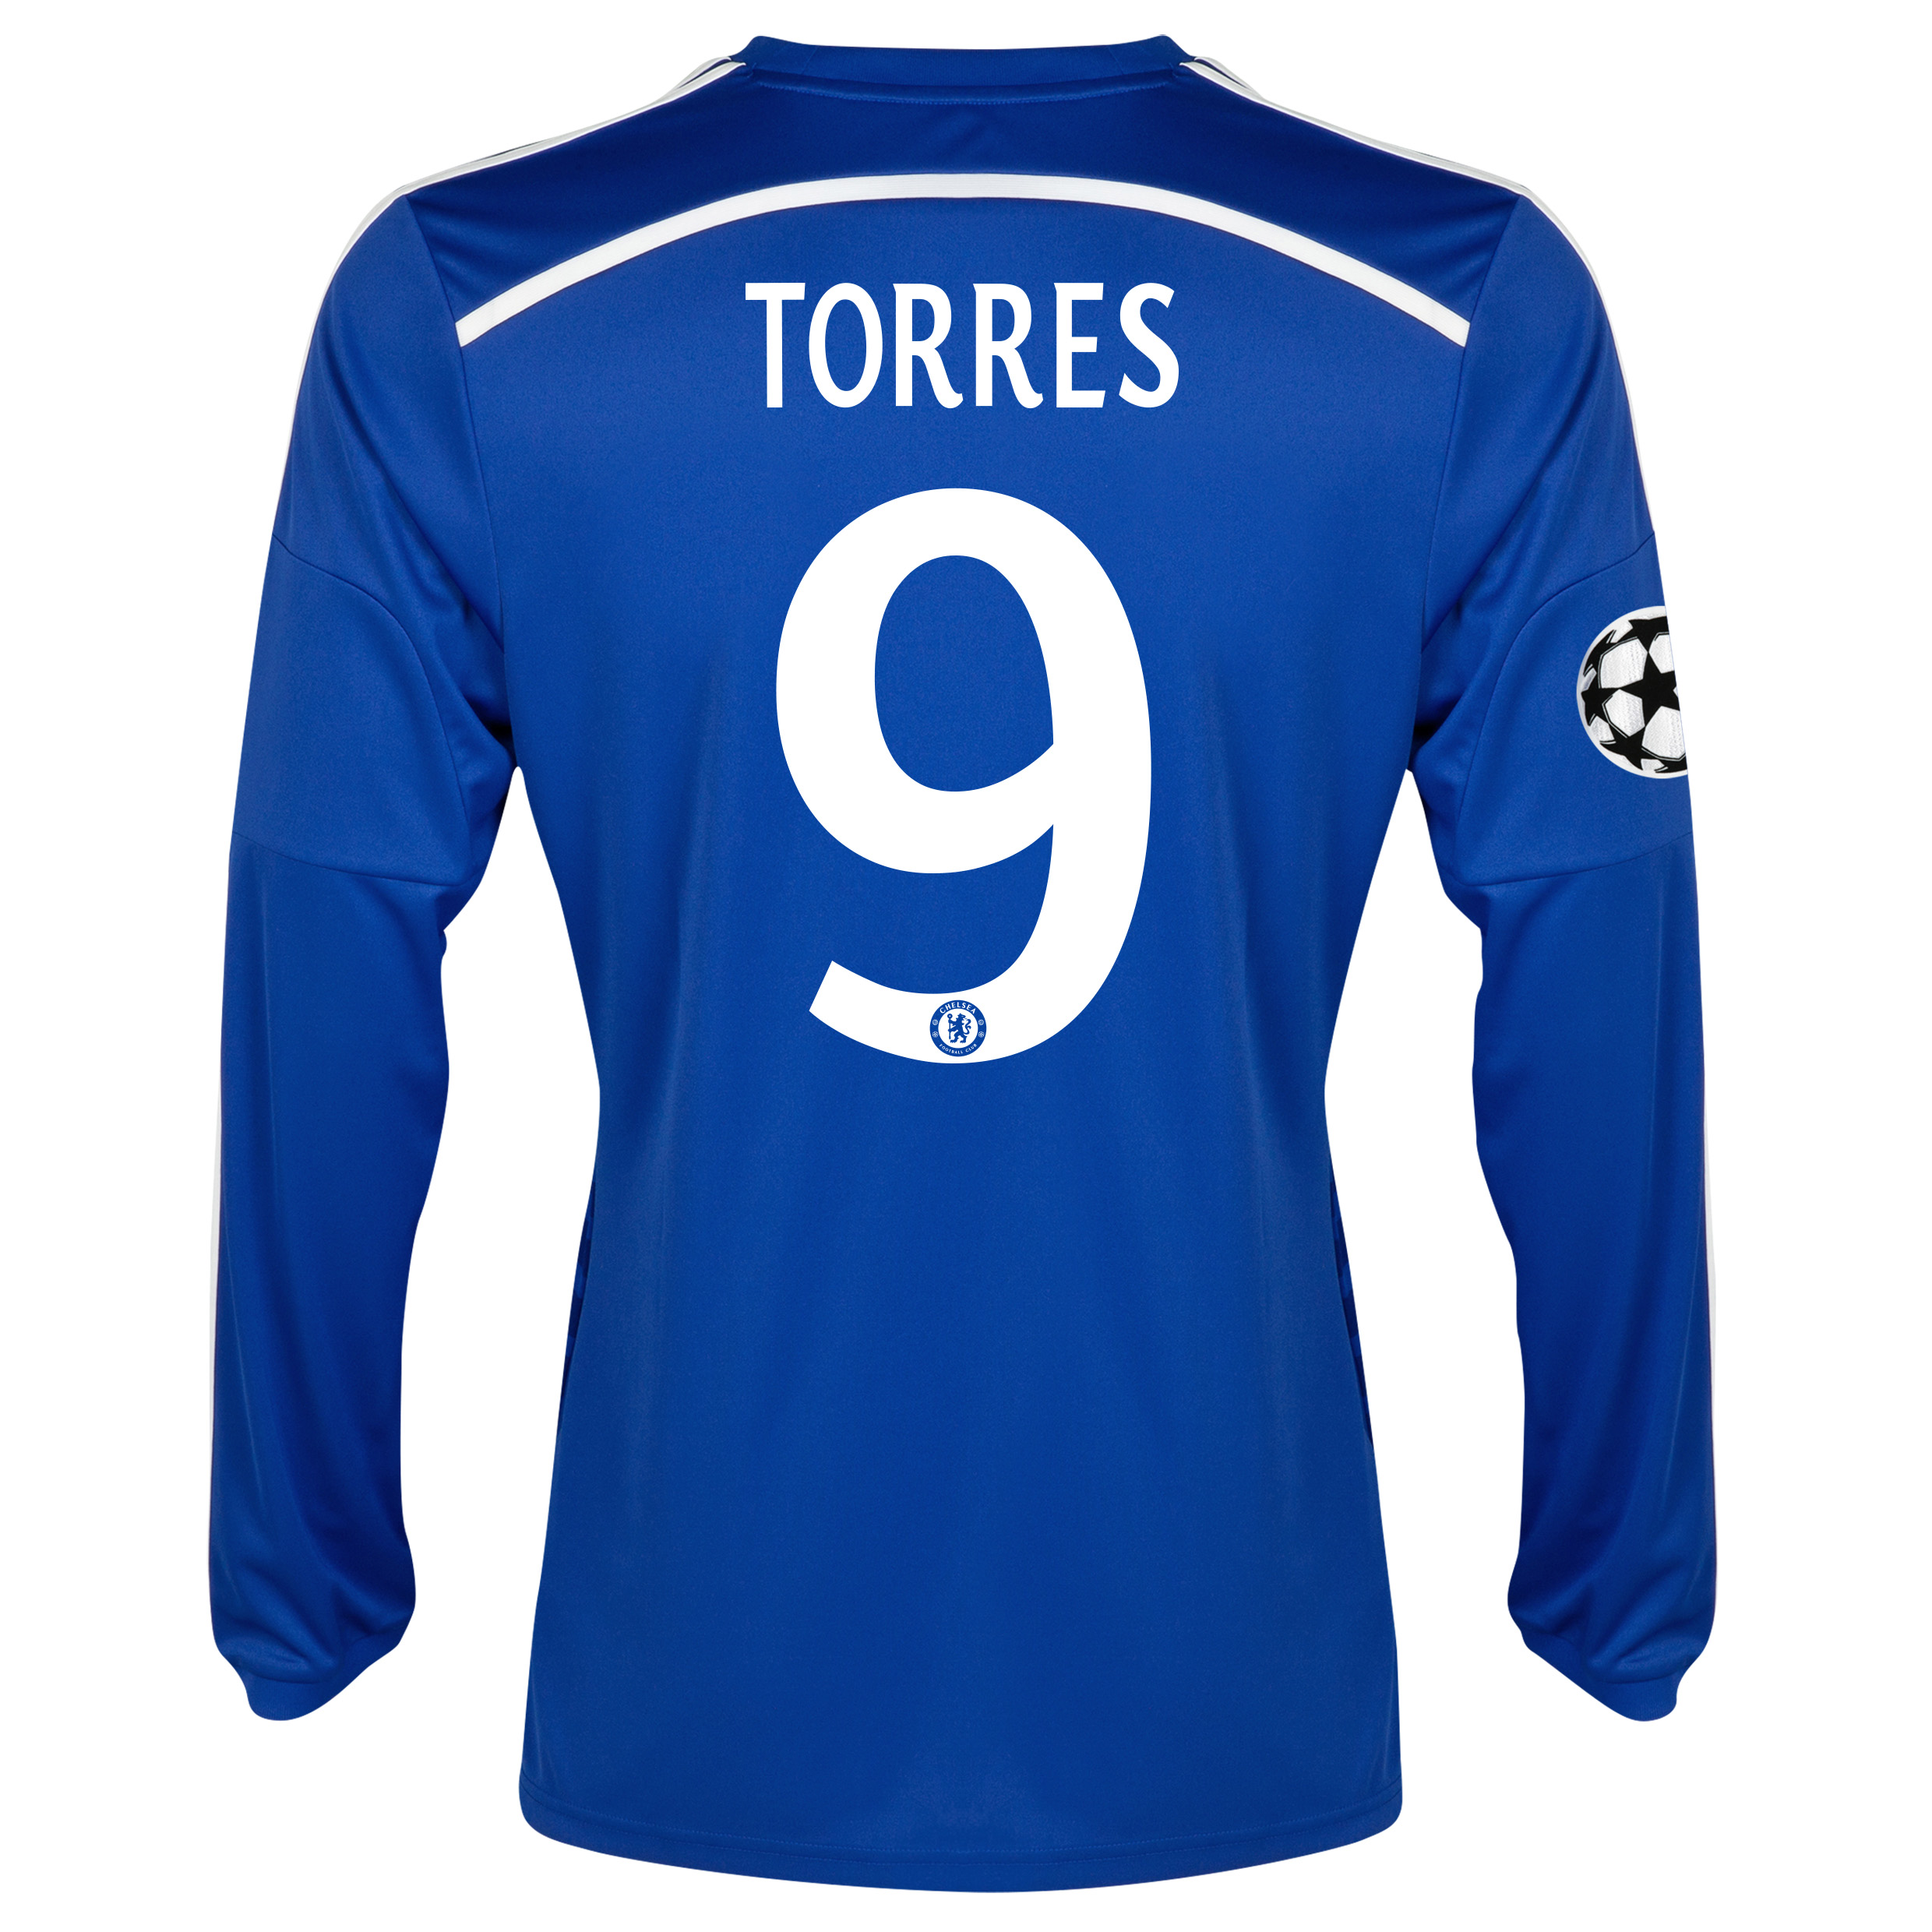 Chelsea UEFA Champions League Home Shirt 2014/15 - Long Sleeve Blue with Torres 9 printing